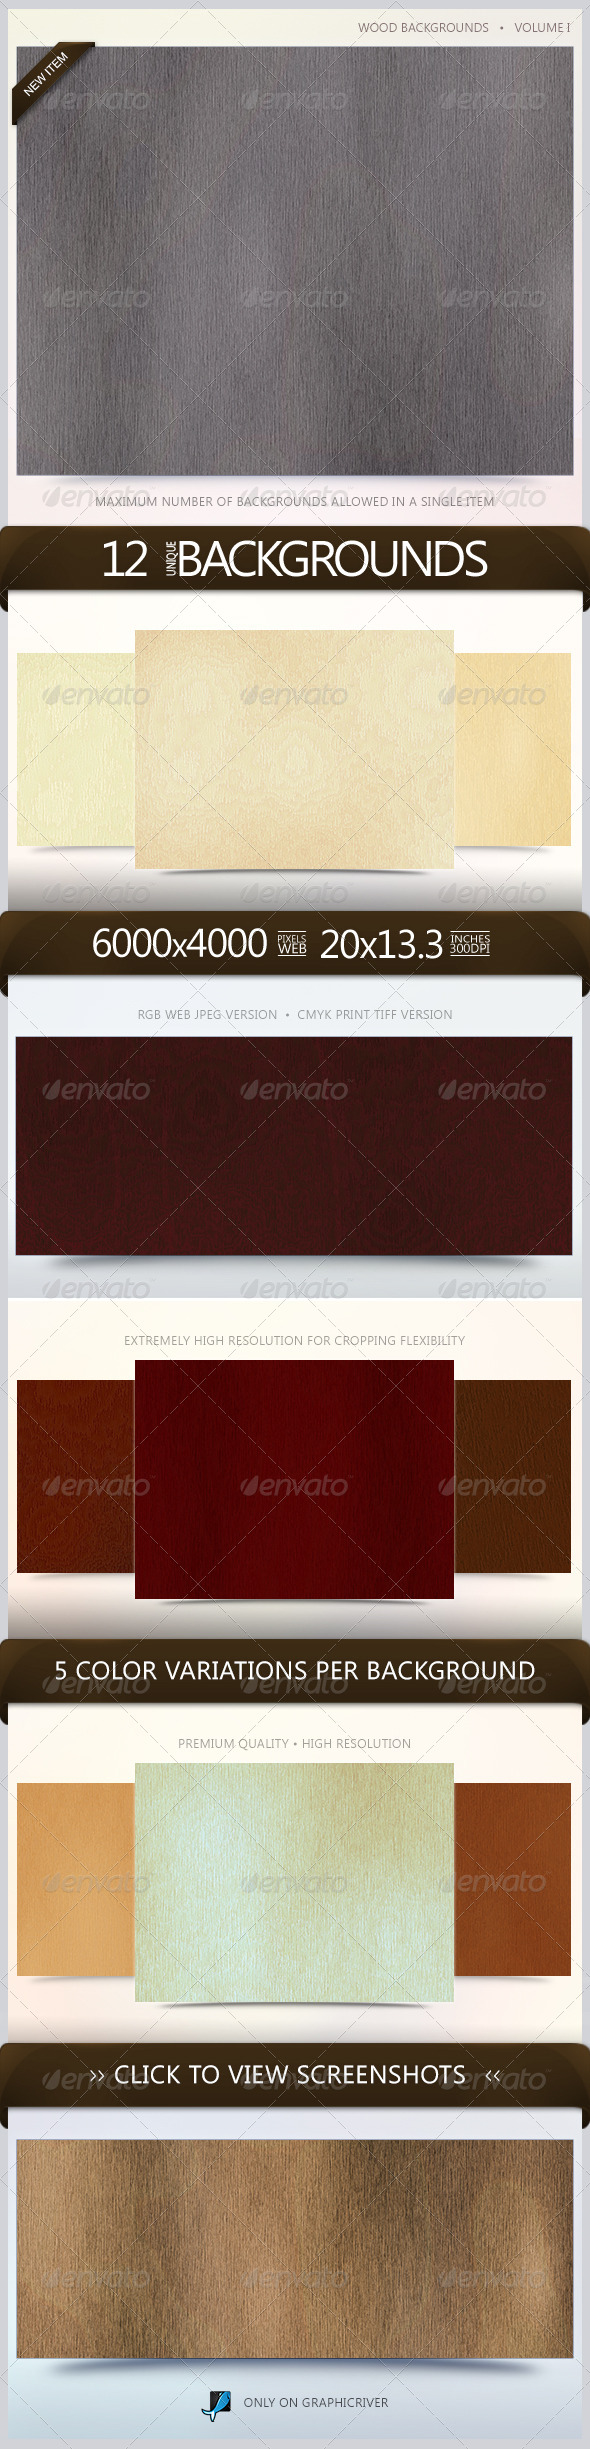 GraphicRiver Wood Backgrounds Volume 1 5518010